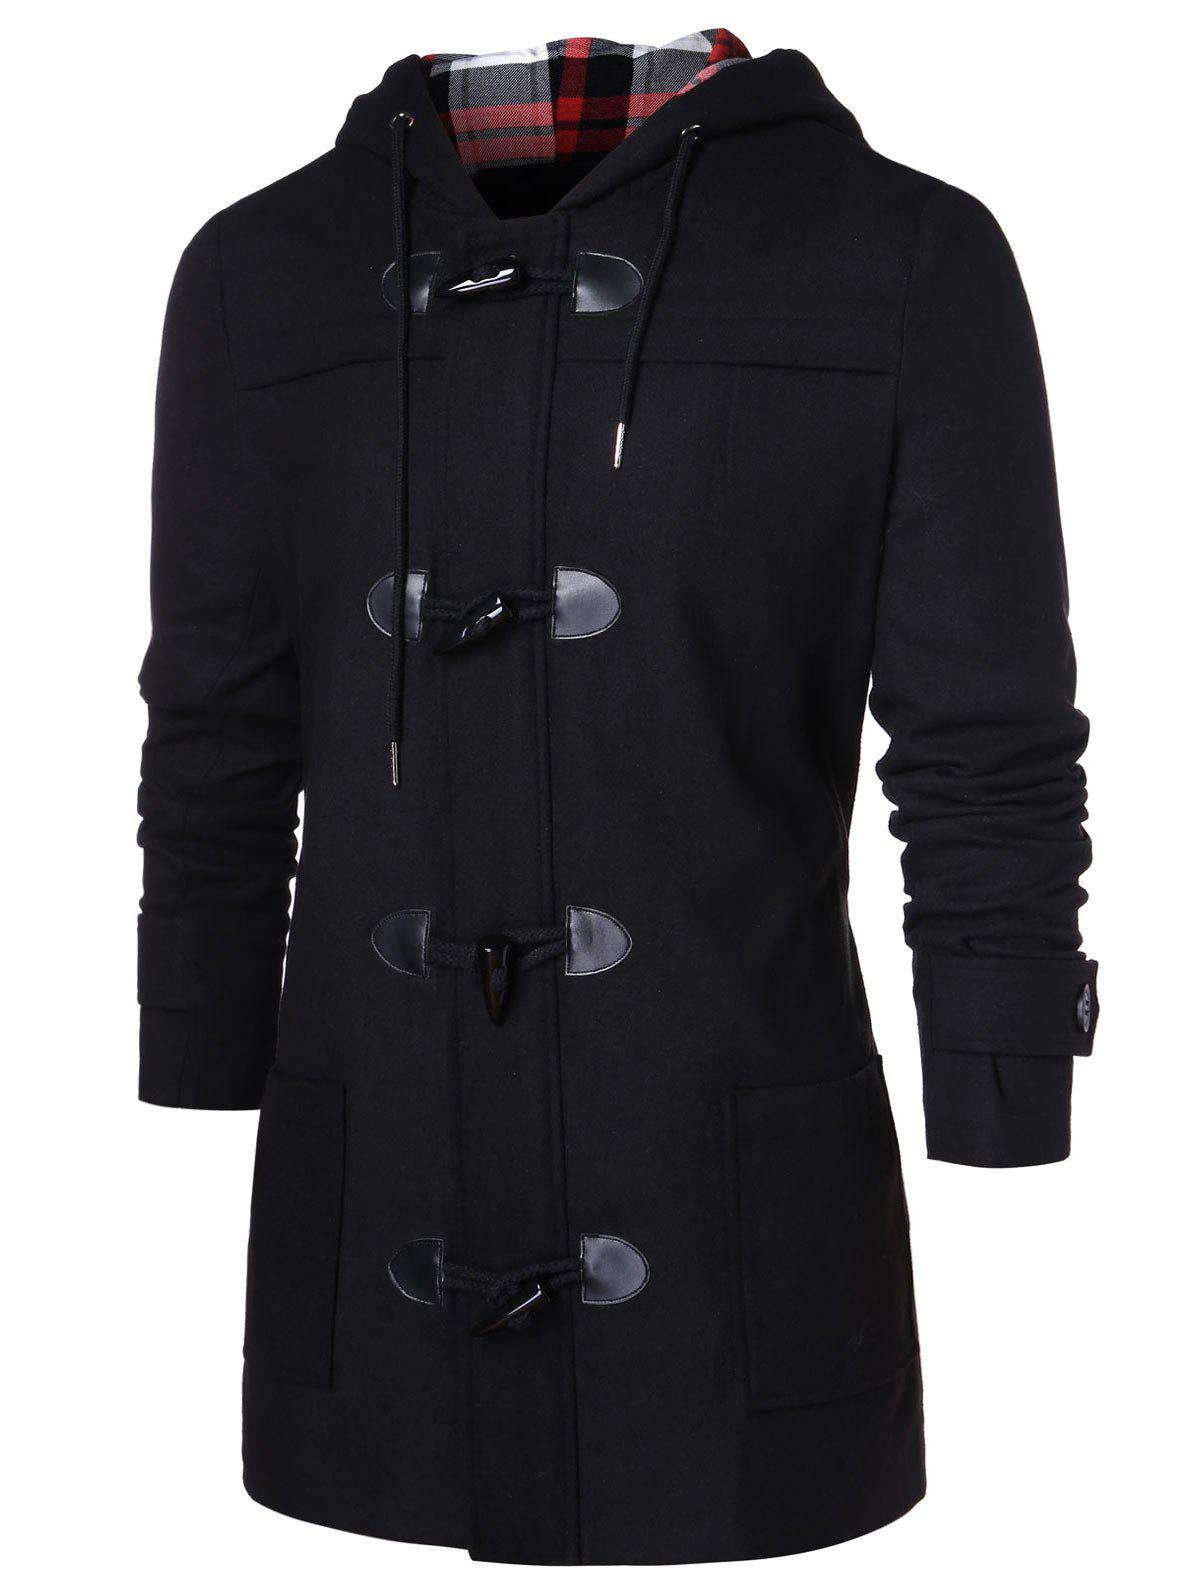 Discount Checked Print Panel Hooded Duffle Coat